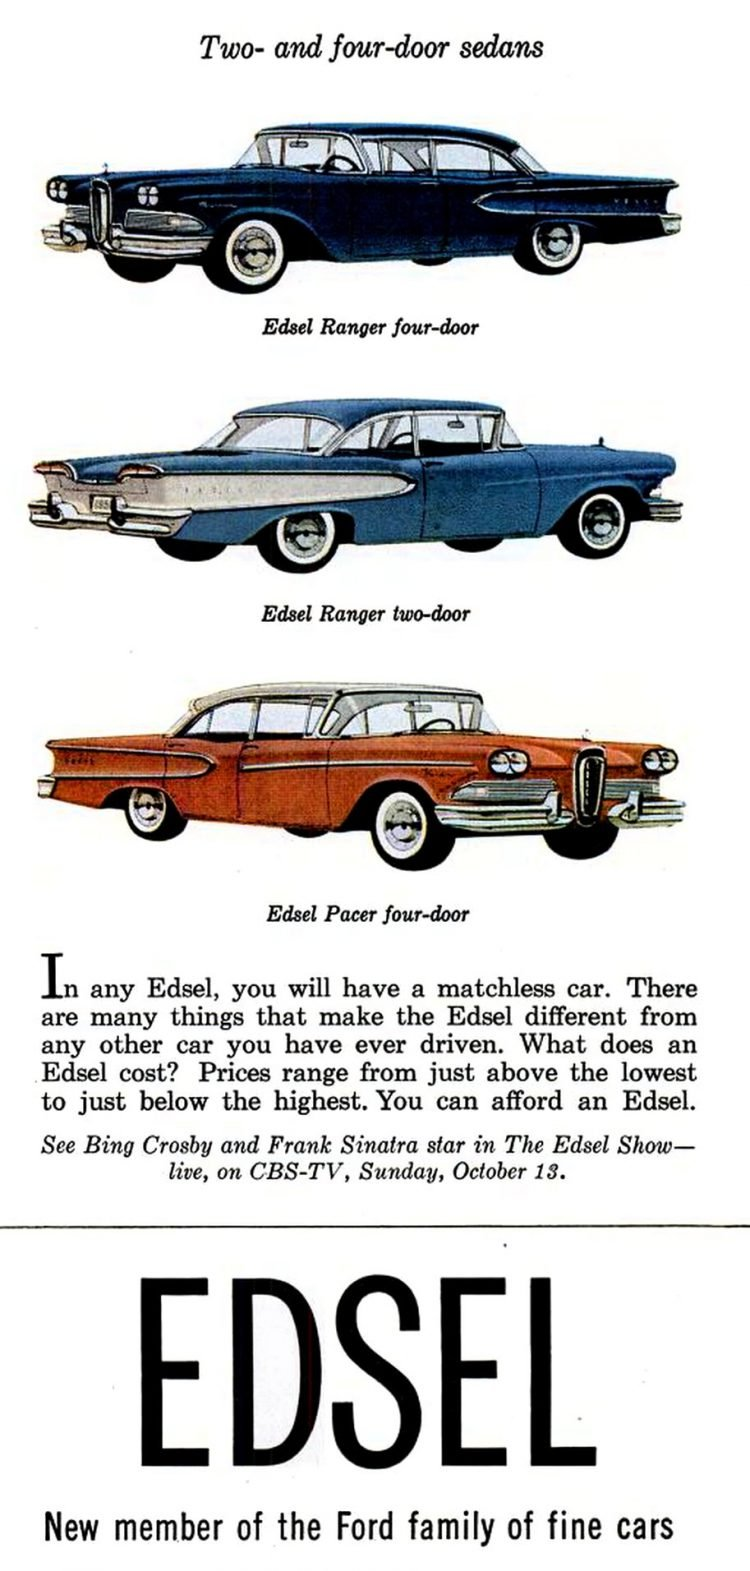 Classic cars - Ford Edsels for 1958